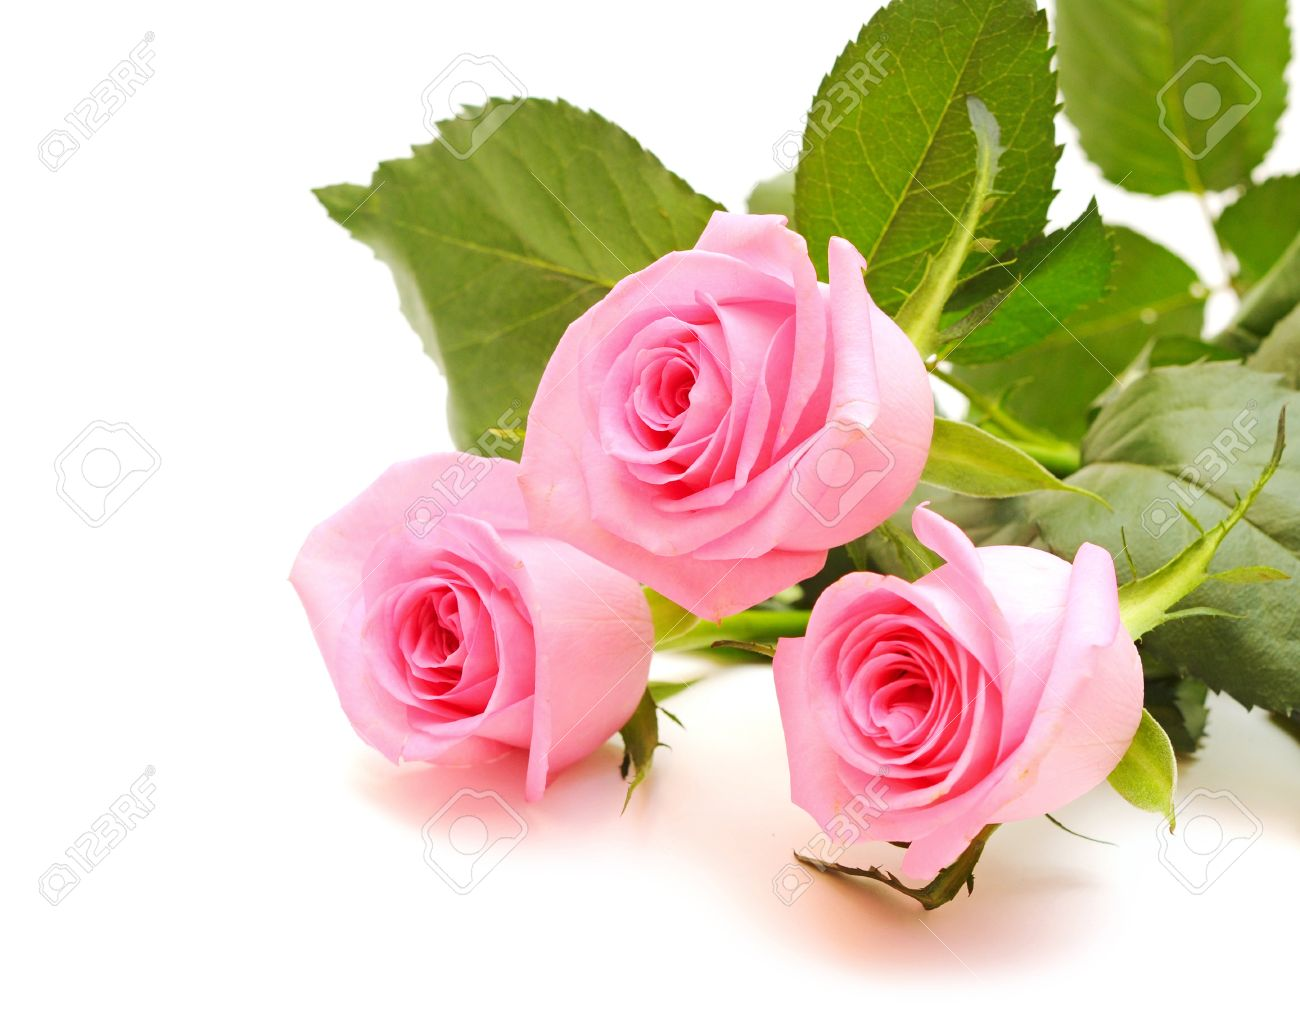 Pink Roses Stock Photos Royalty Free Pink Roses Images